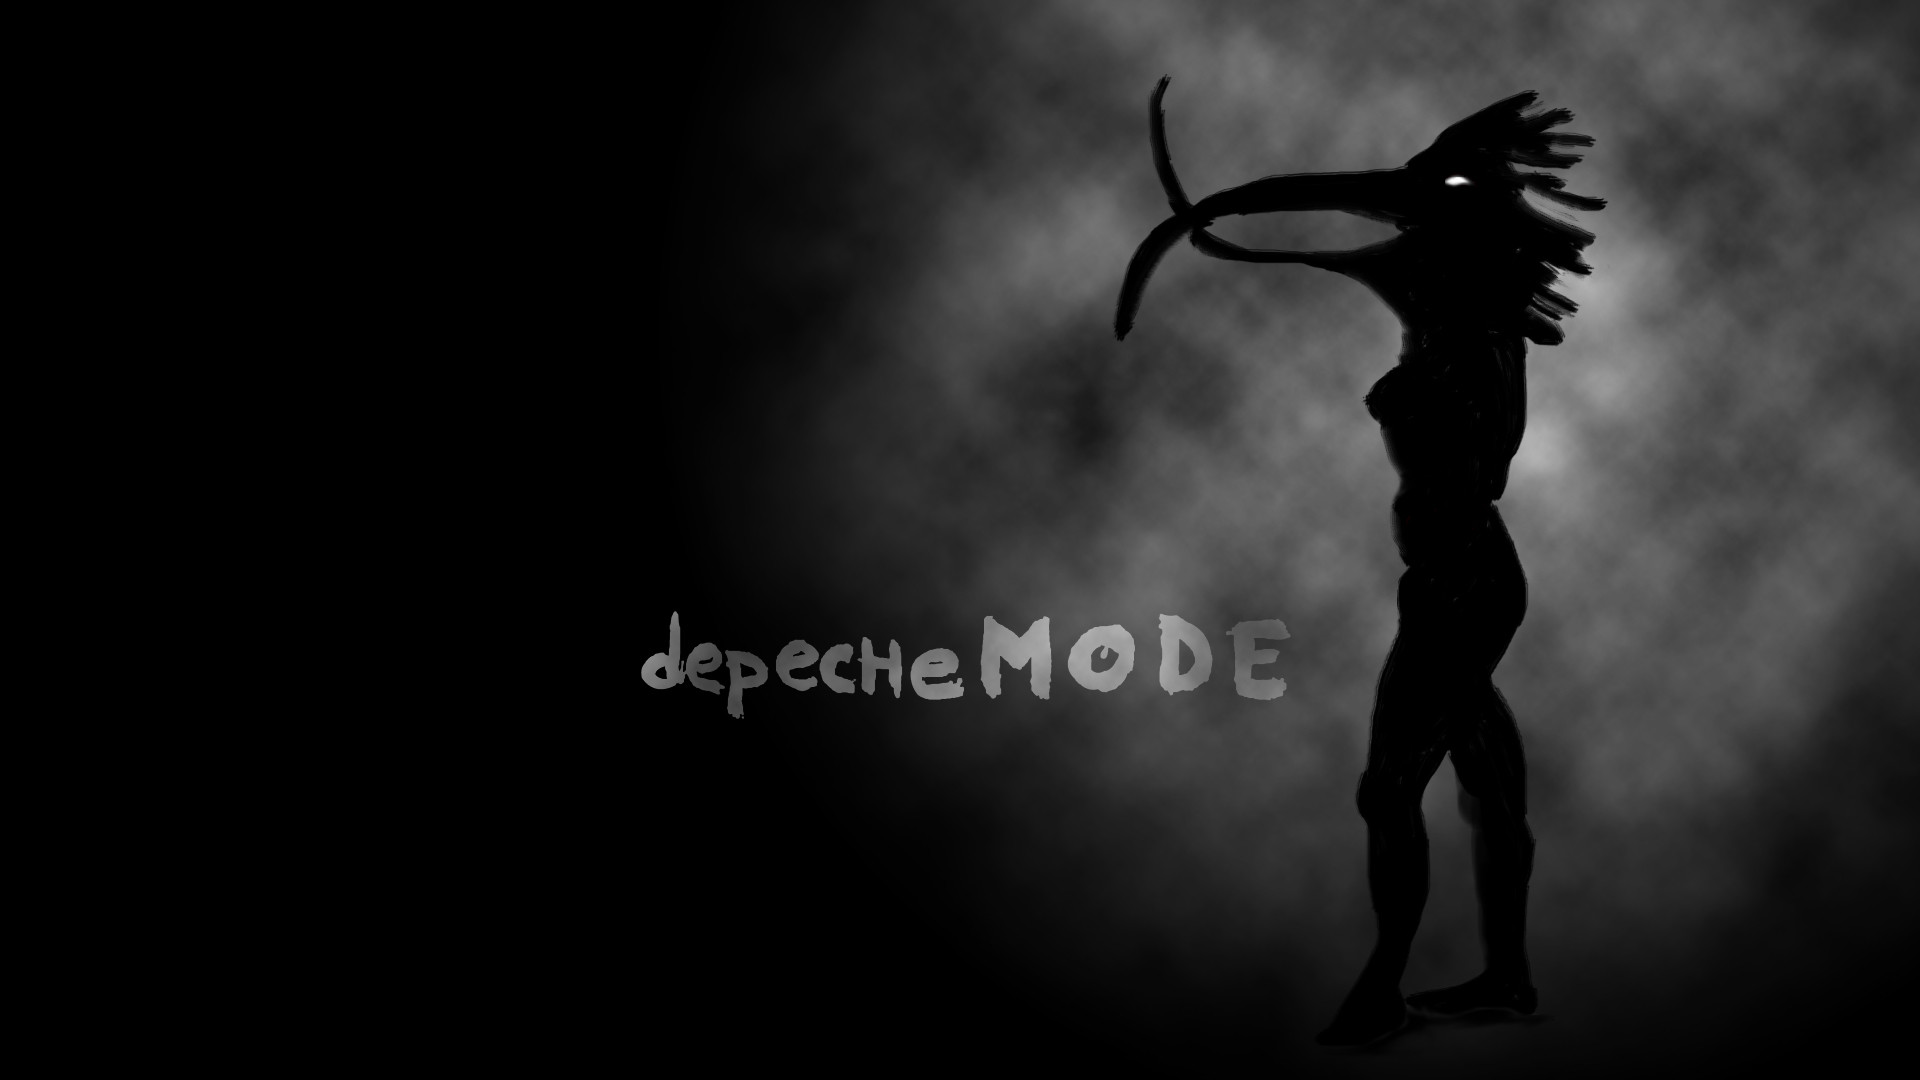 1920x1080 Depeche Mode:WalkingInMyPaint5 by IDAlizes Depeche Mode:WalkingInMyPaint5  by IDAlizes